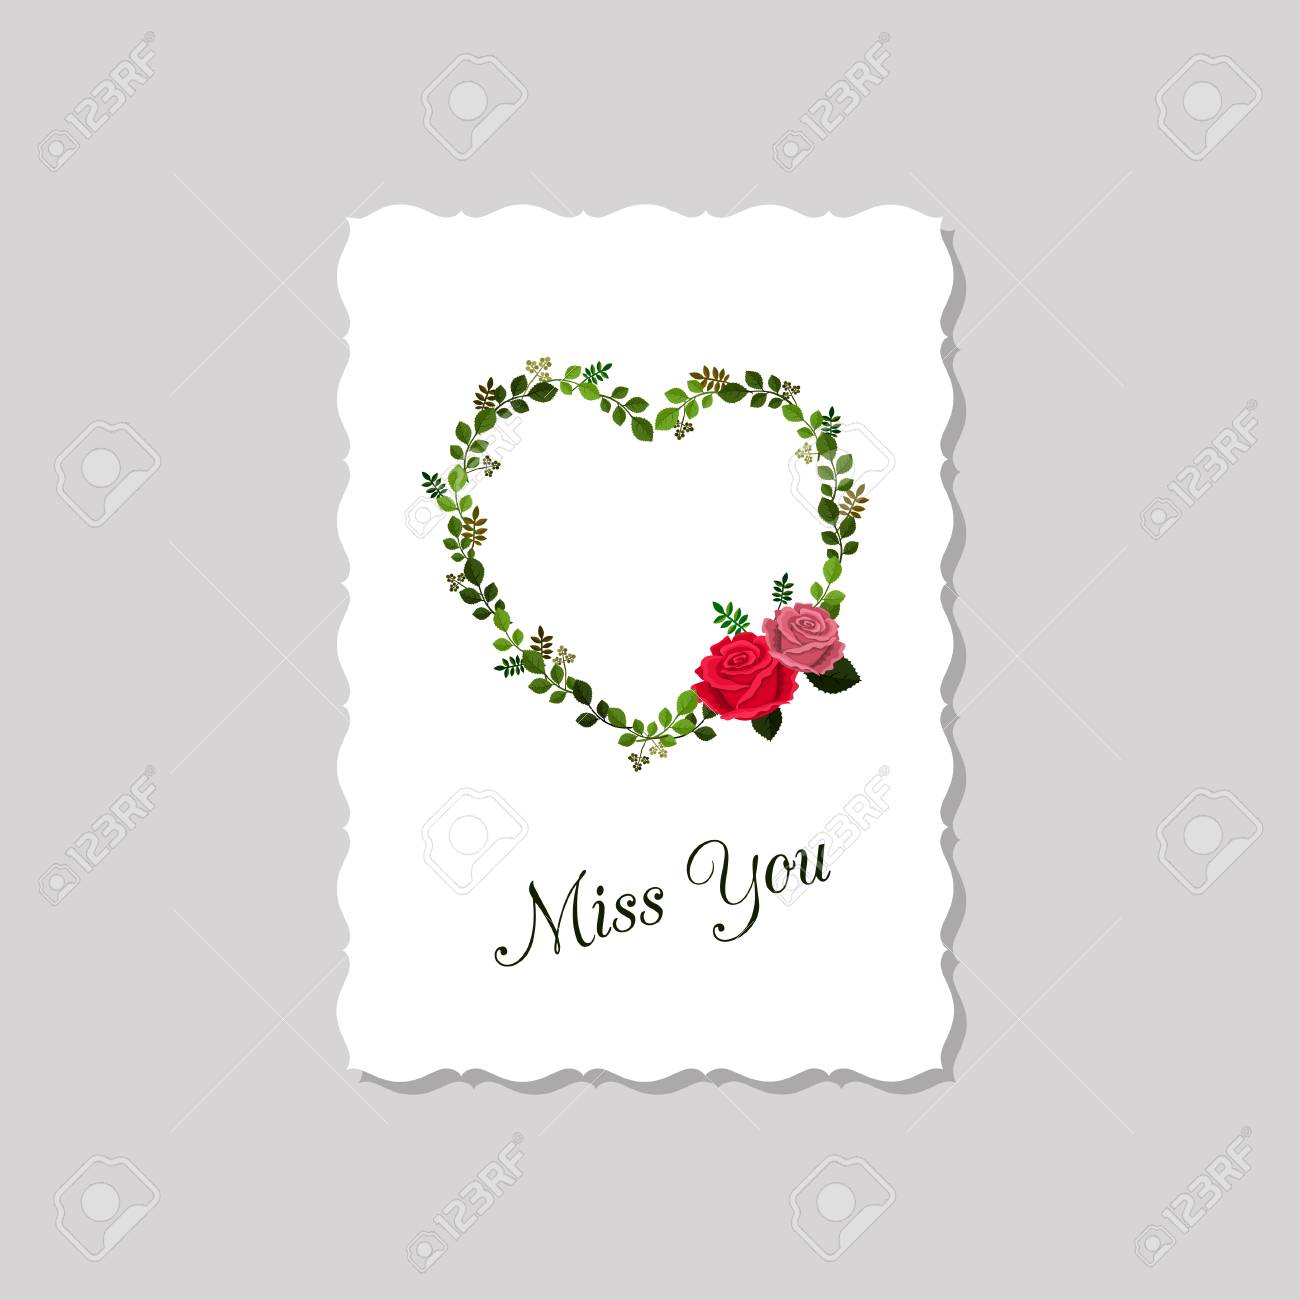 Vector Illustration Of Greeting Card Miss You Decorated With Roses